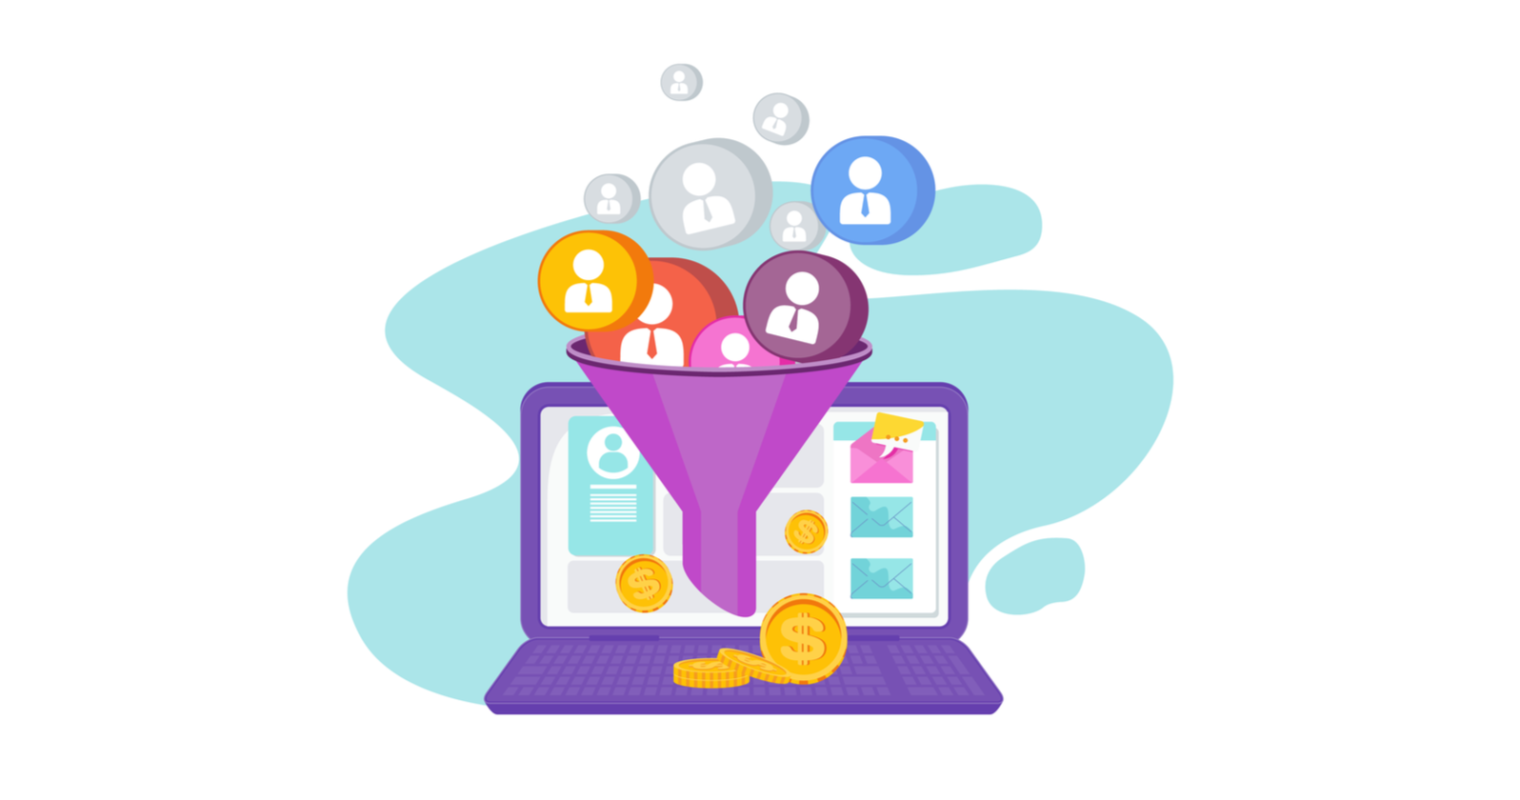 SaaS Marketing: How to Get More Quality Leads for Your Brand